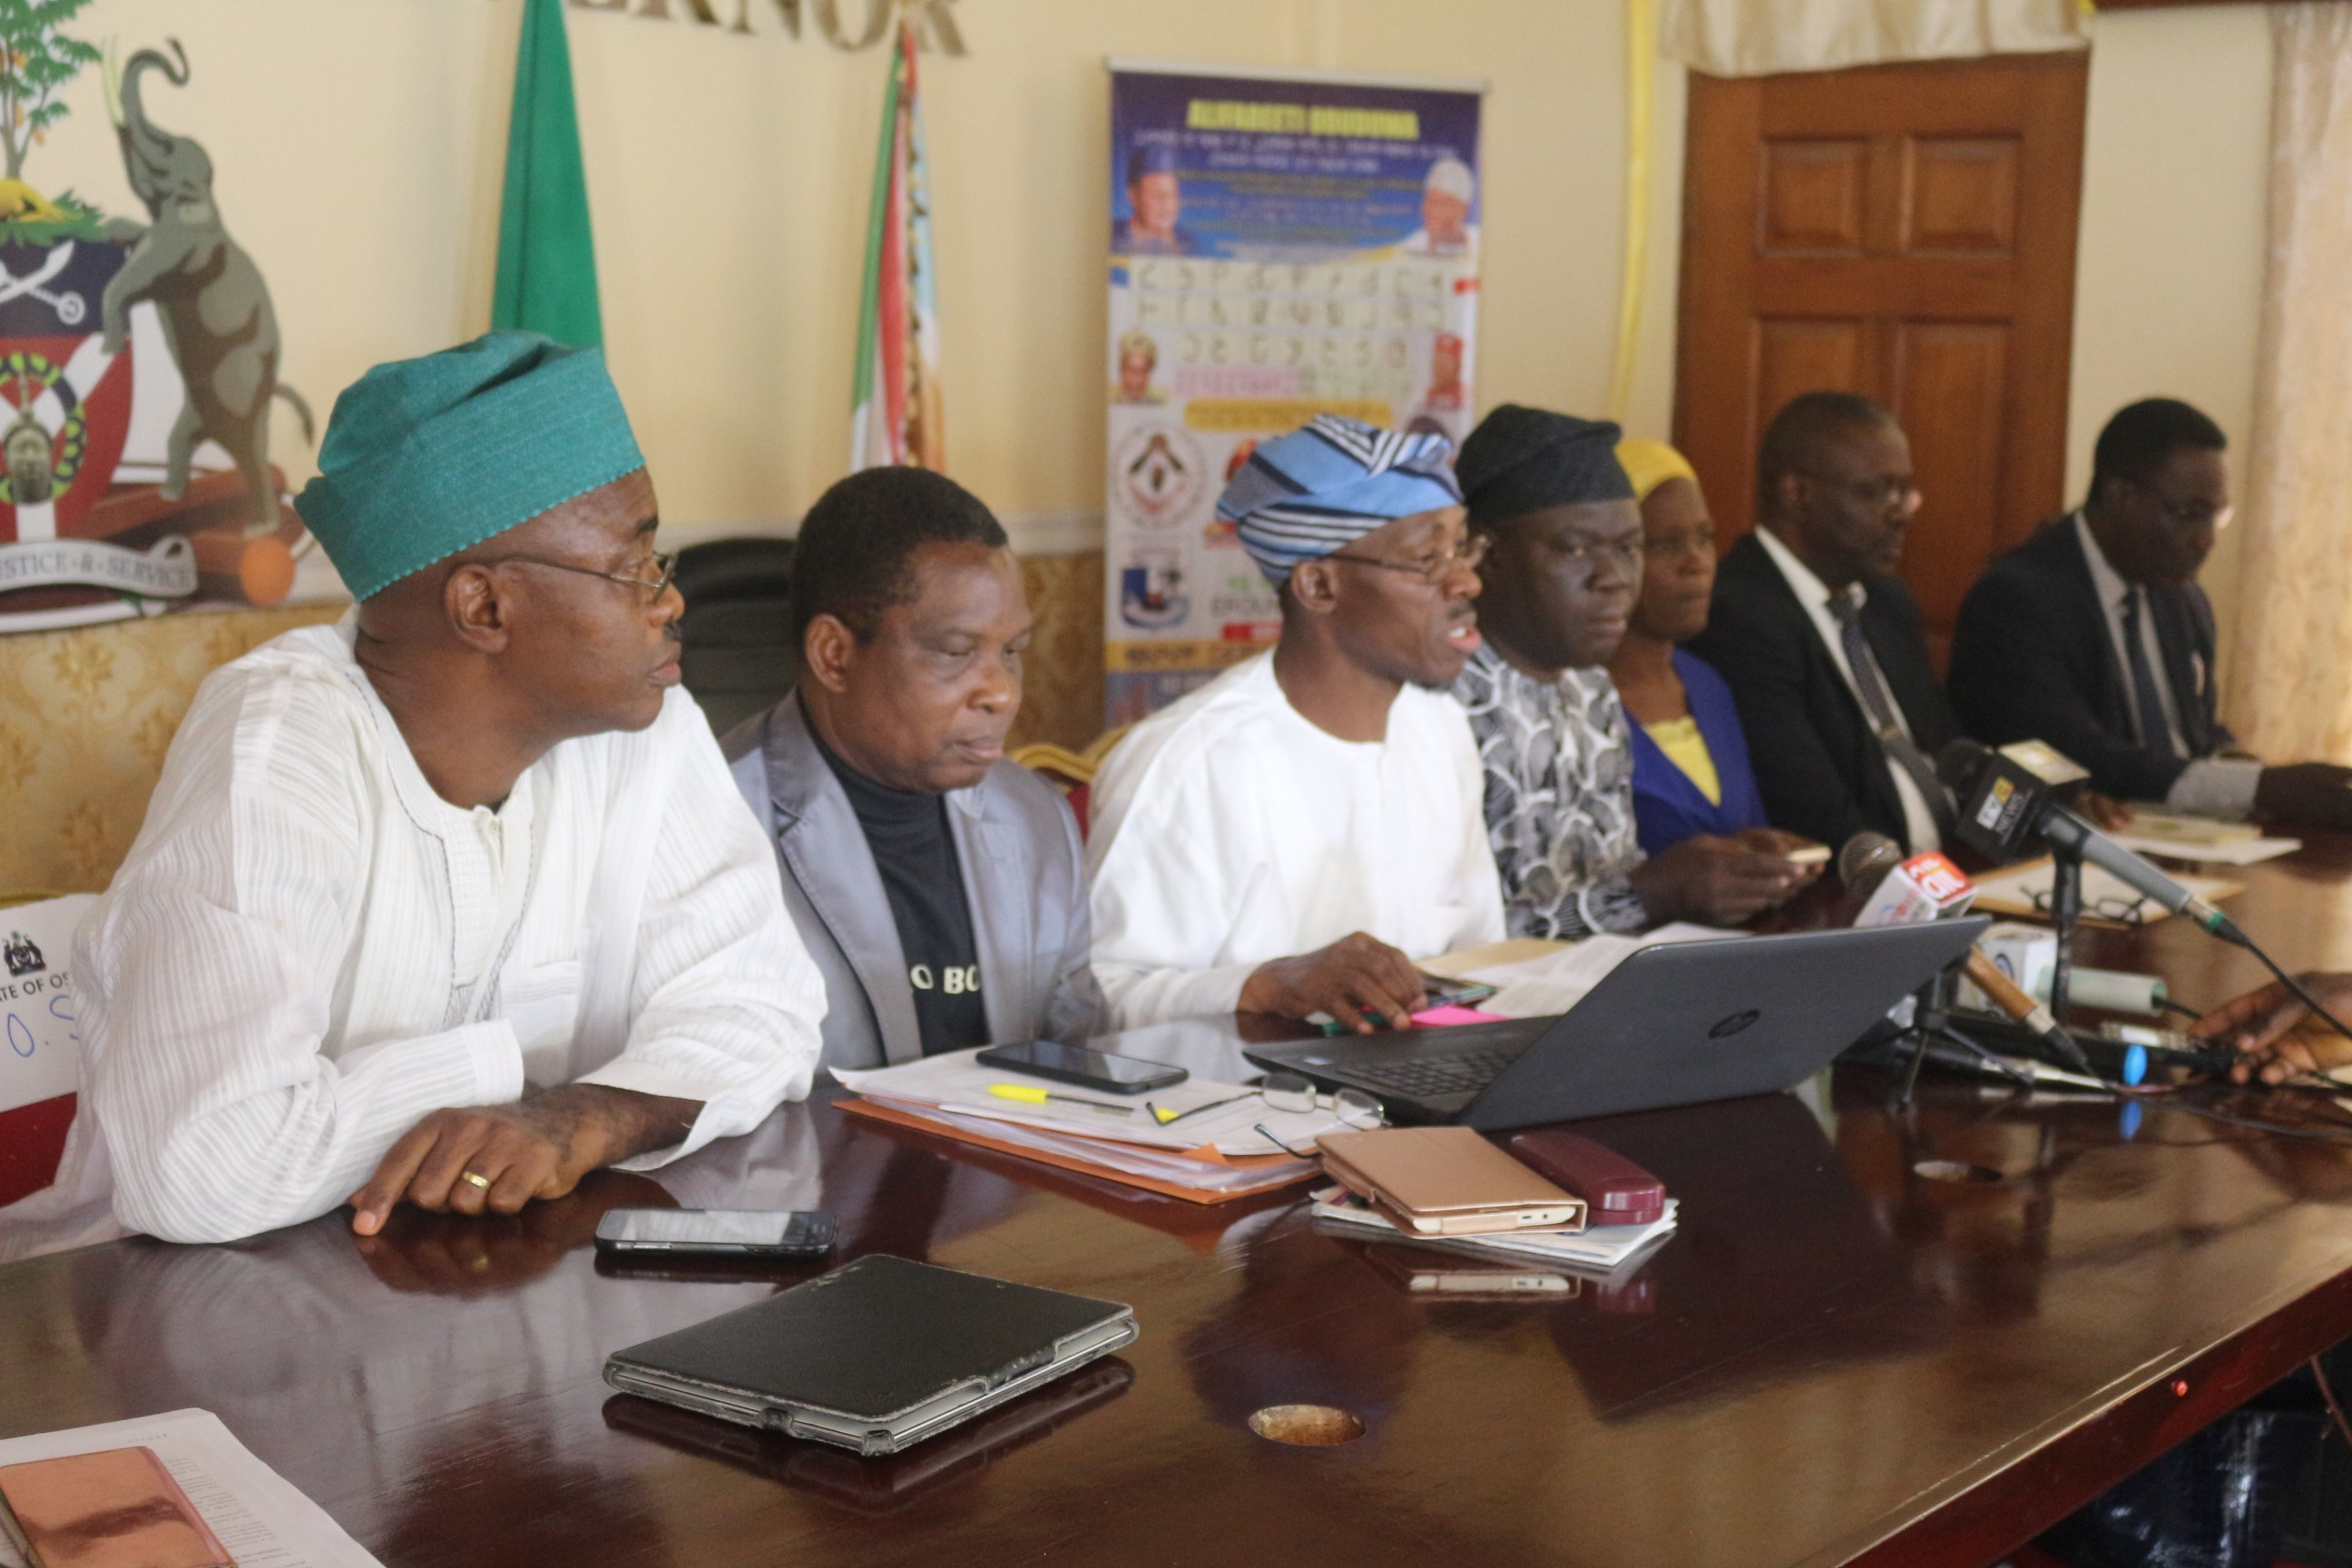 WAEC confirms improvement in Osun Education under Aregbesola